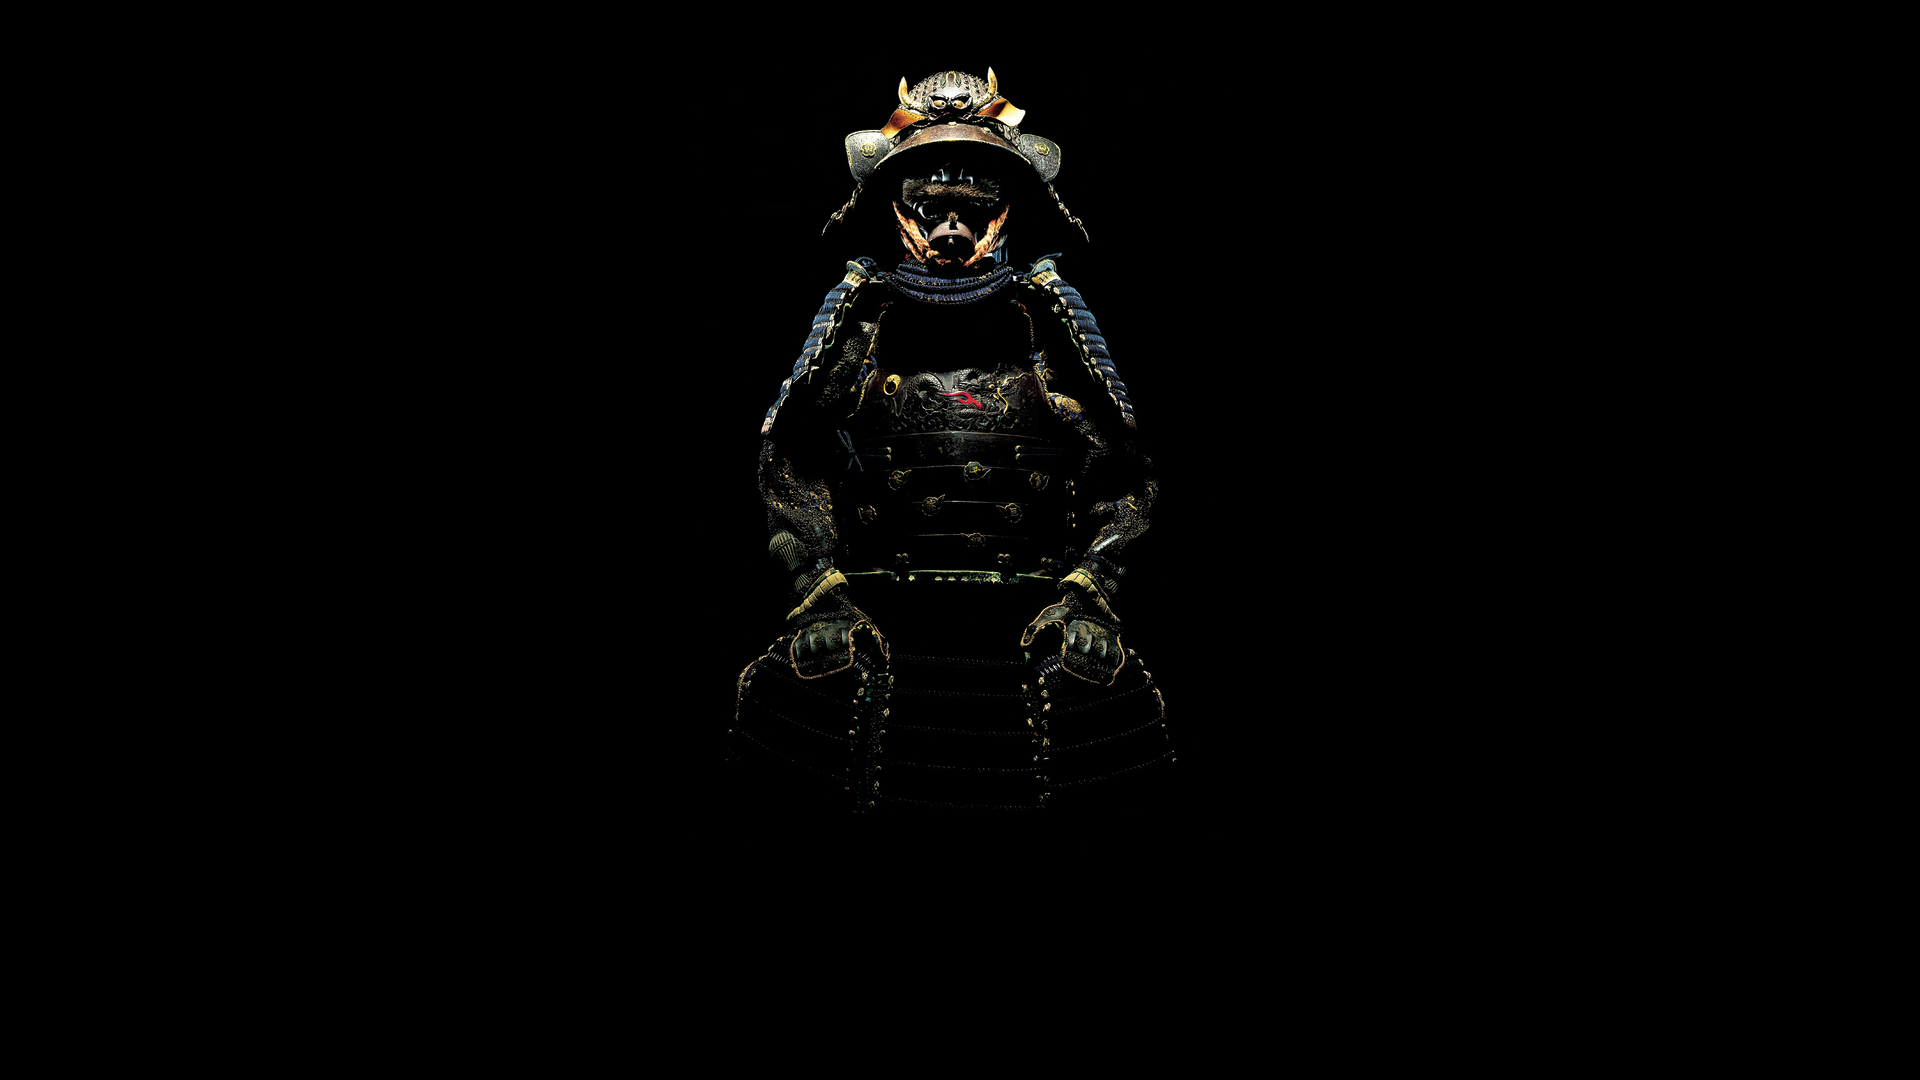 Samurai Wallpaper High Definition Simple Png Png Image 1920 1080 Pixels Scaled 68